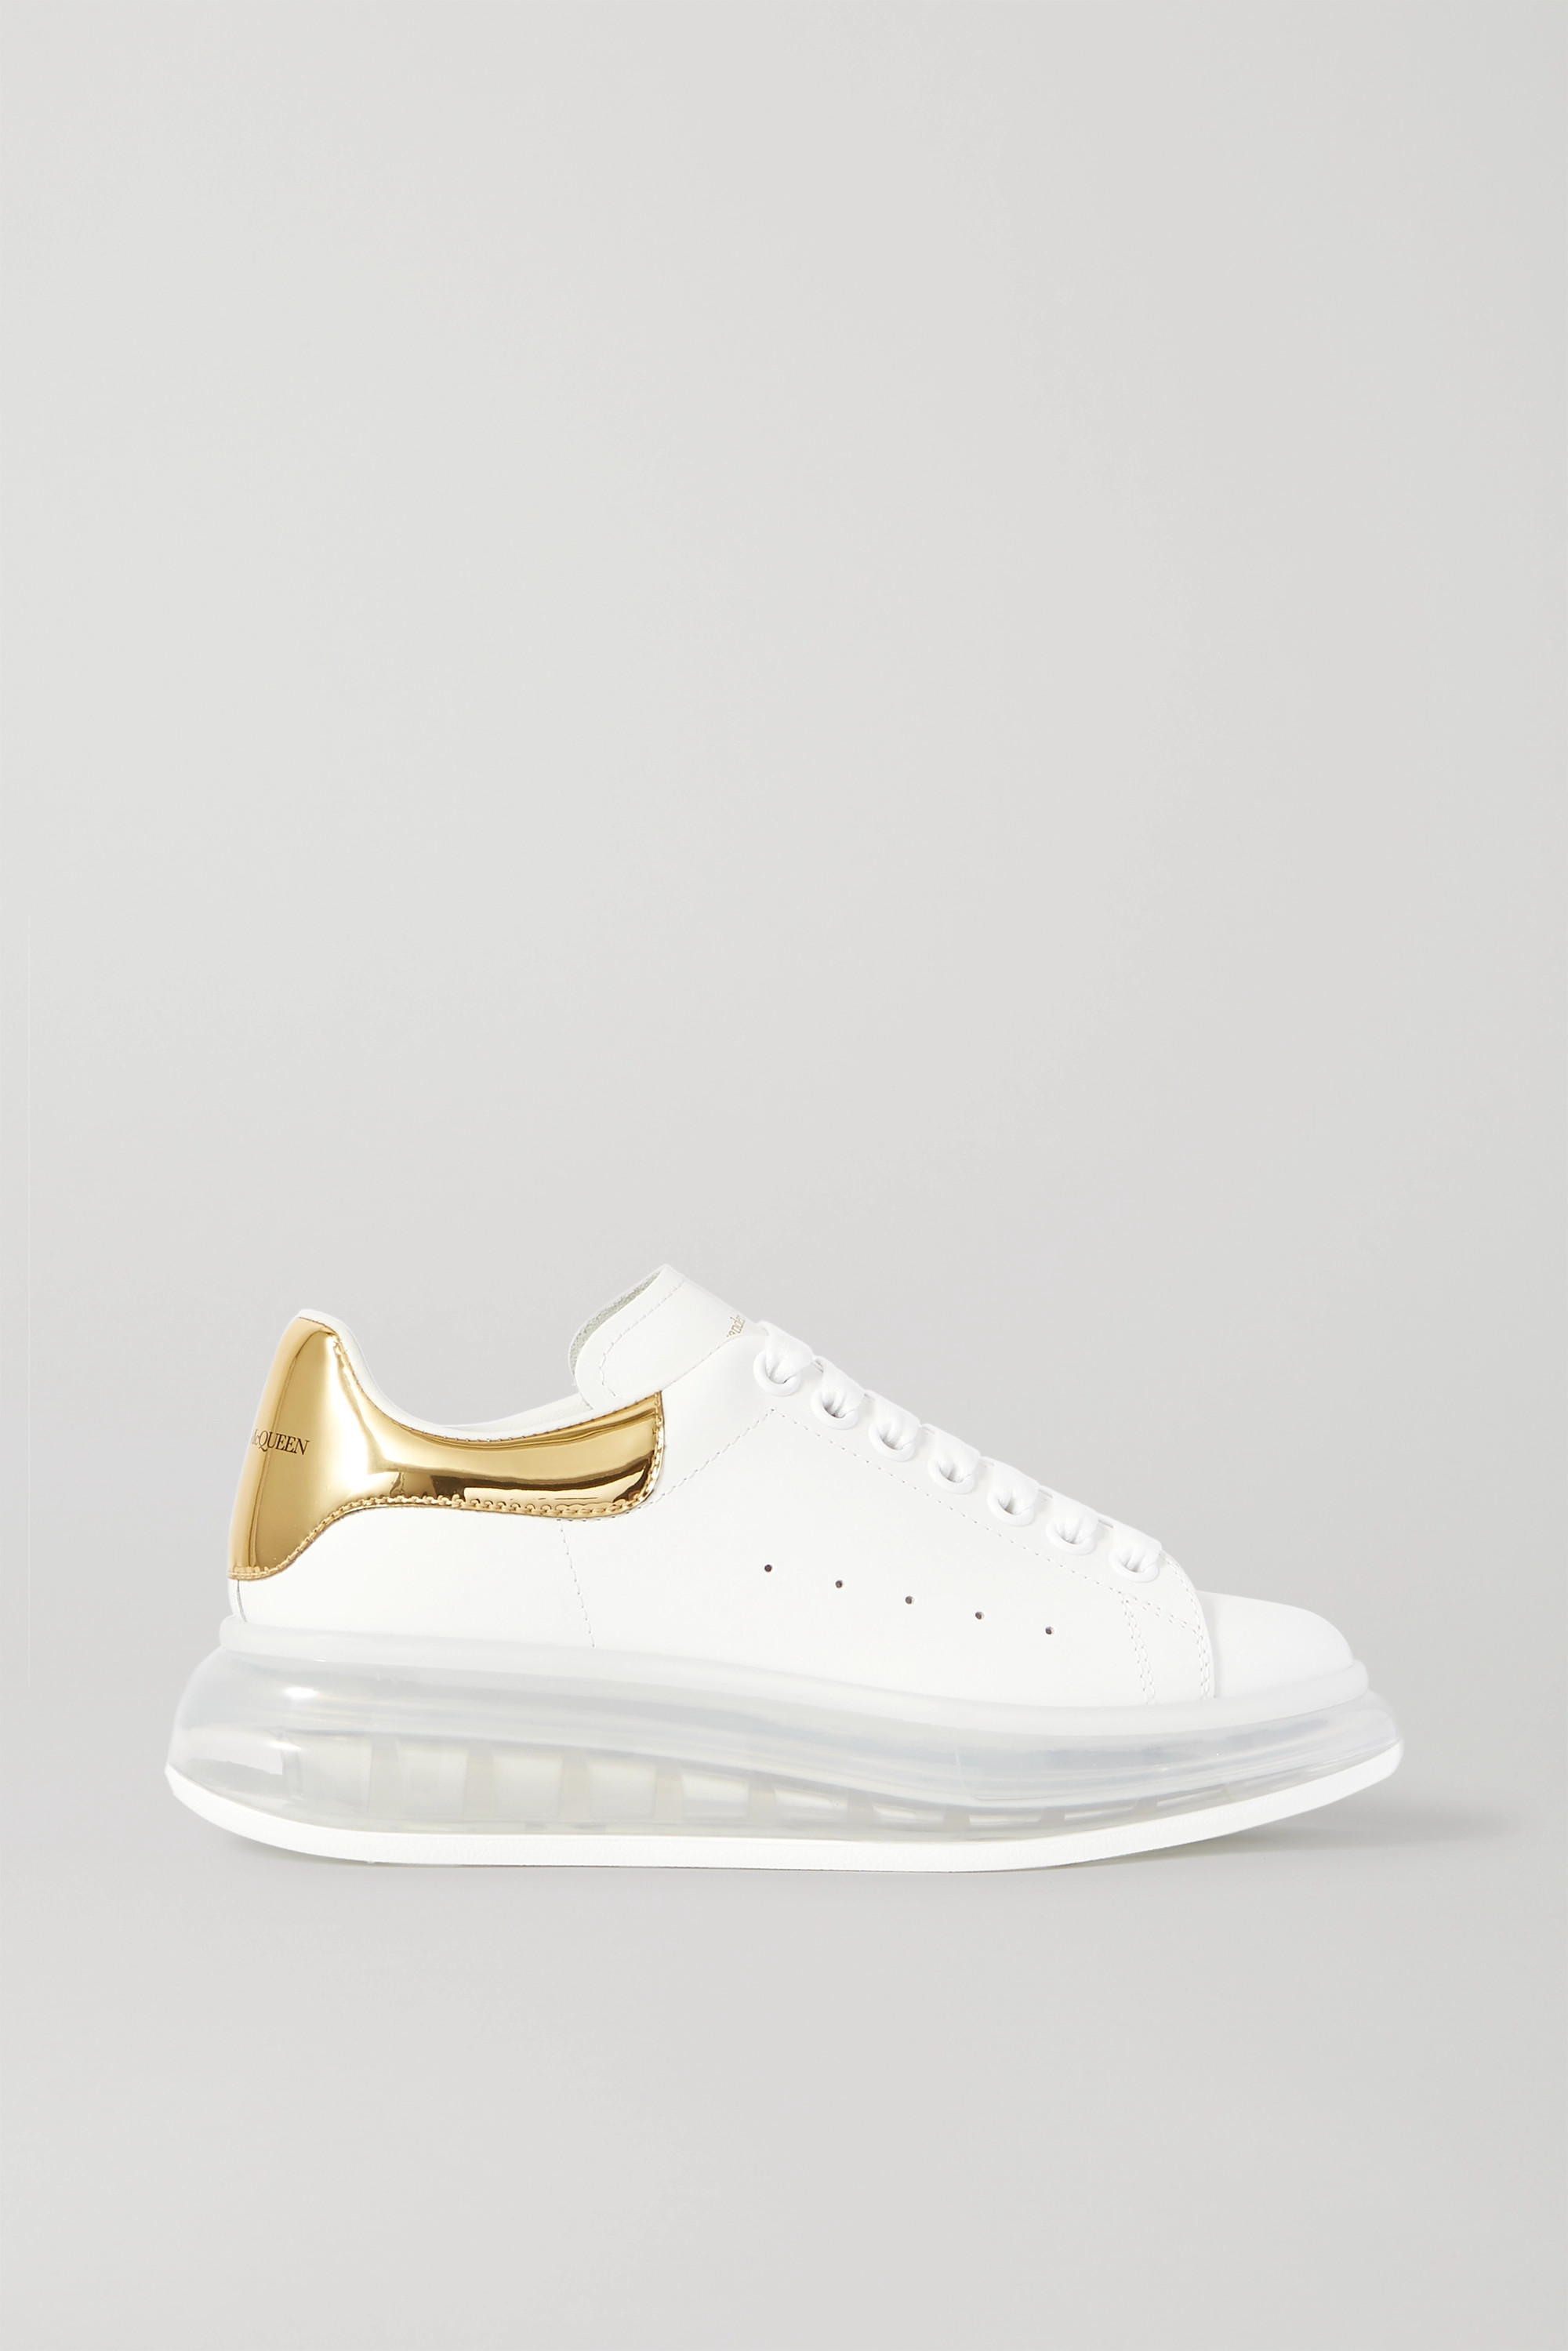 Alexander McQueen Metallic-trimmed leather exaggerated-sole sneakers